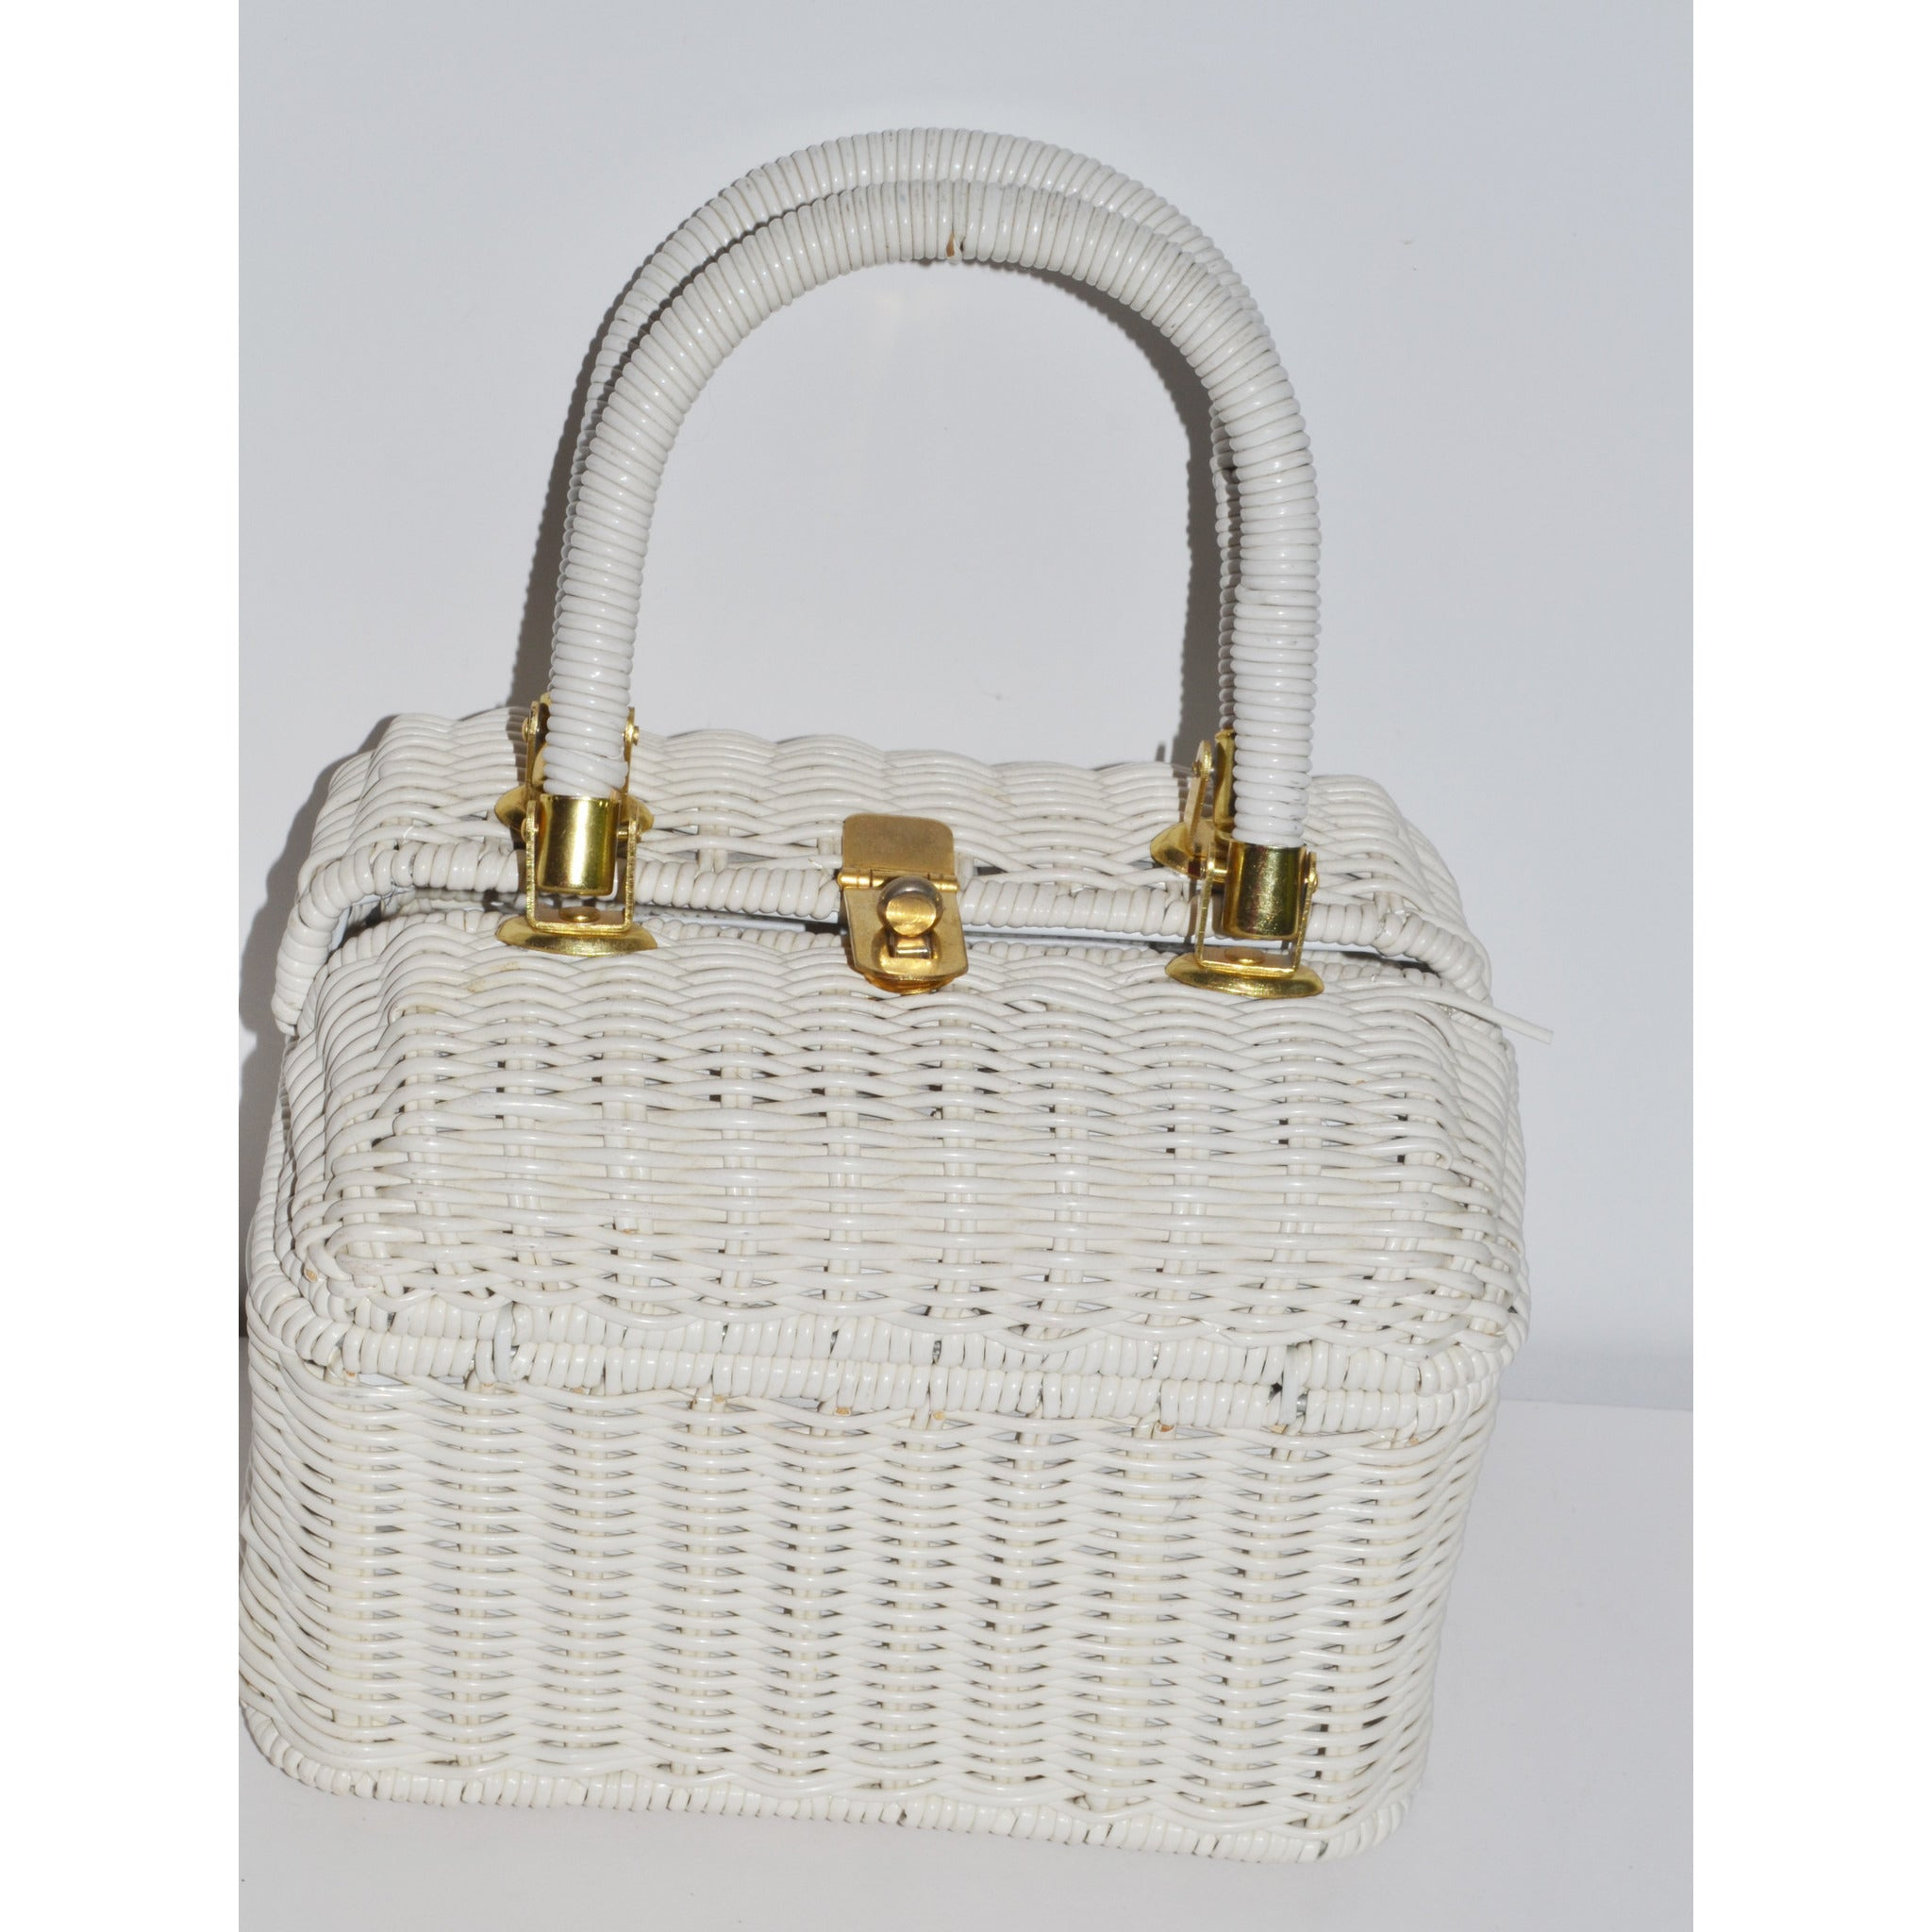 Vintage White Boxed Wicker Purse